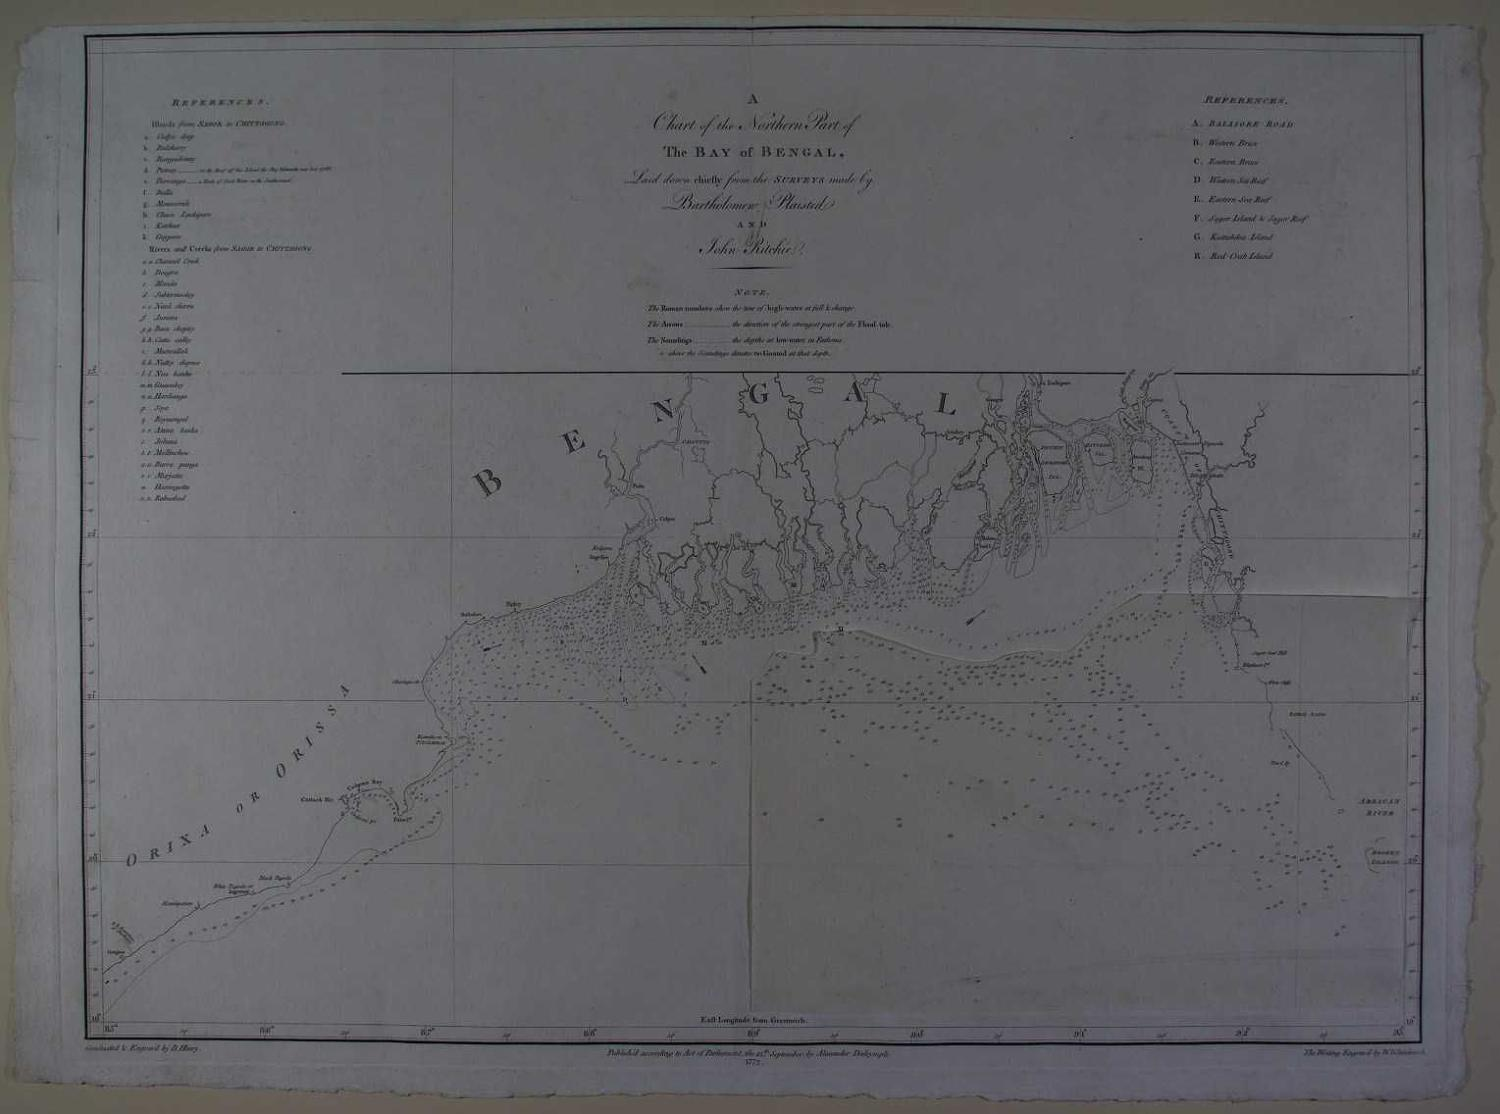 A Chart of the Northern Part of the Bay of Bengal, by John Ritchie